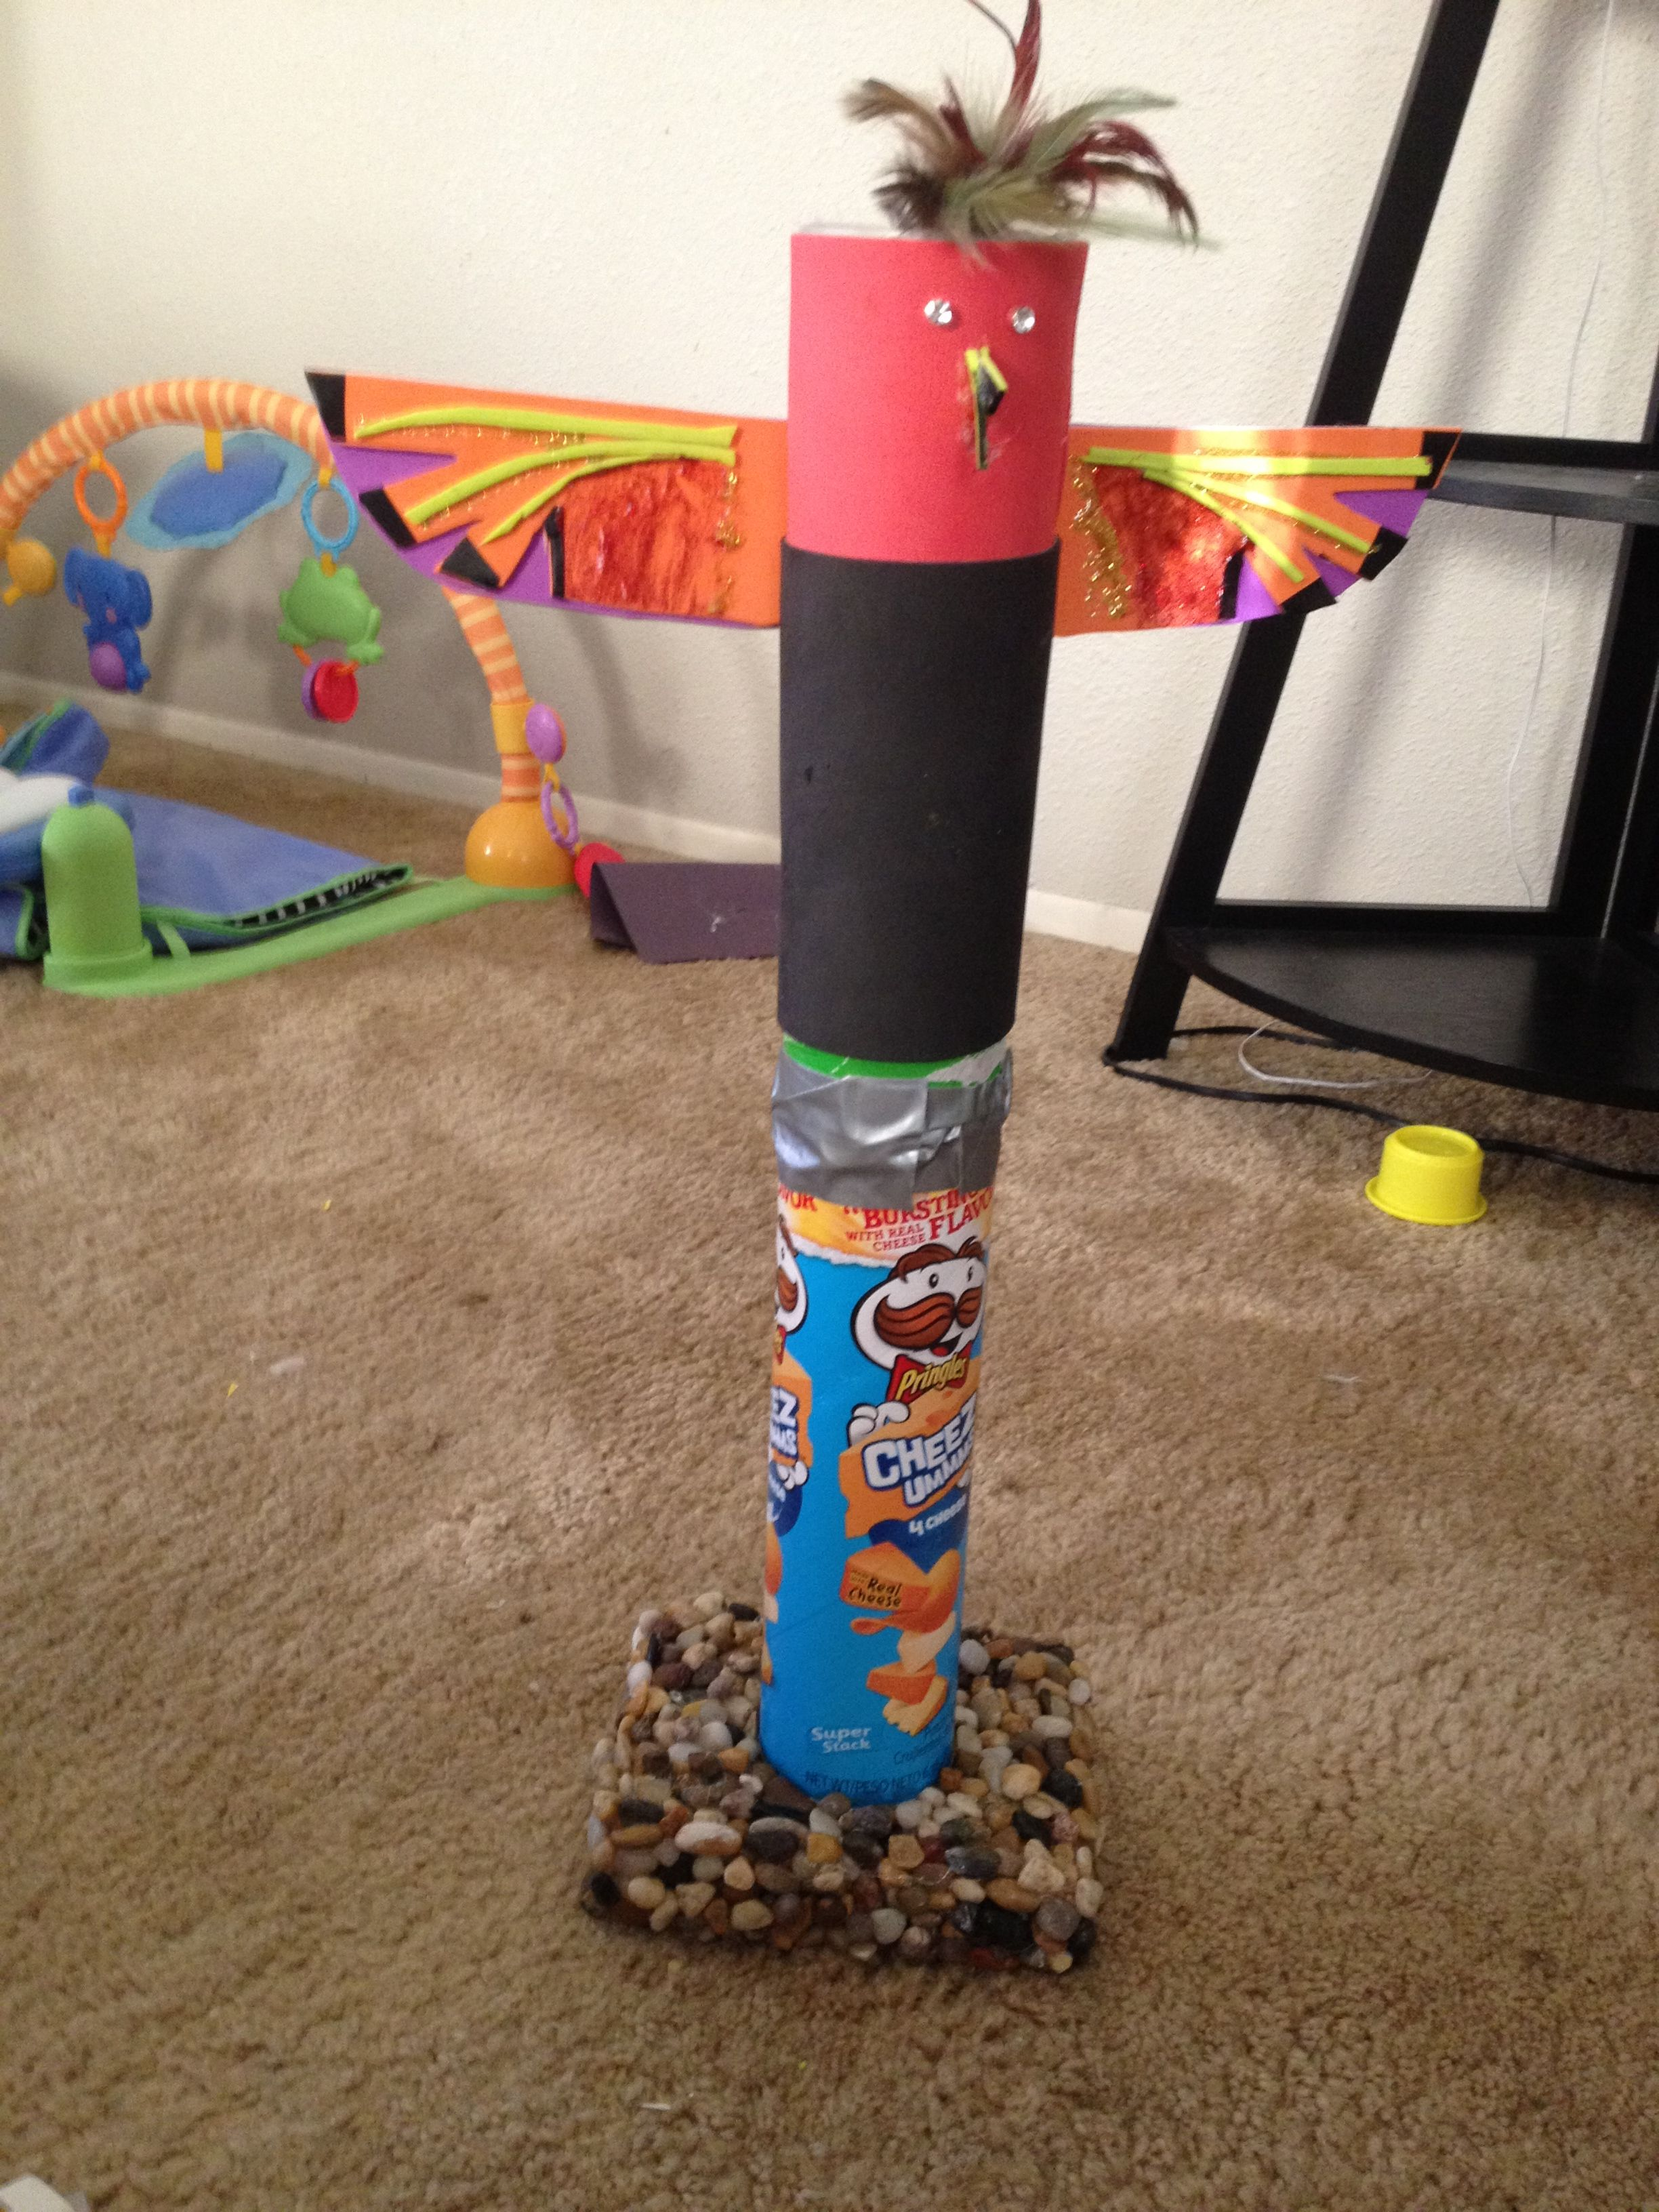 Totem pole project with Pringles can | Totem pole by kids ...